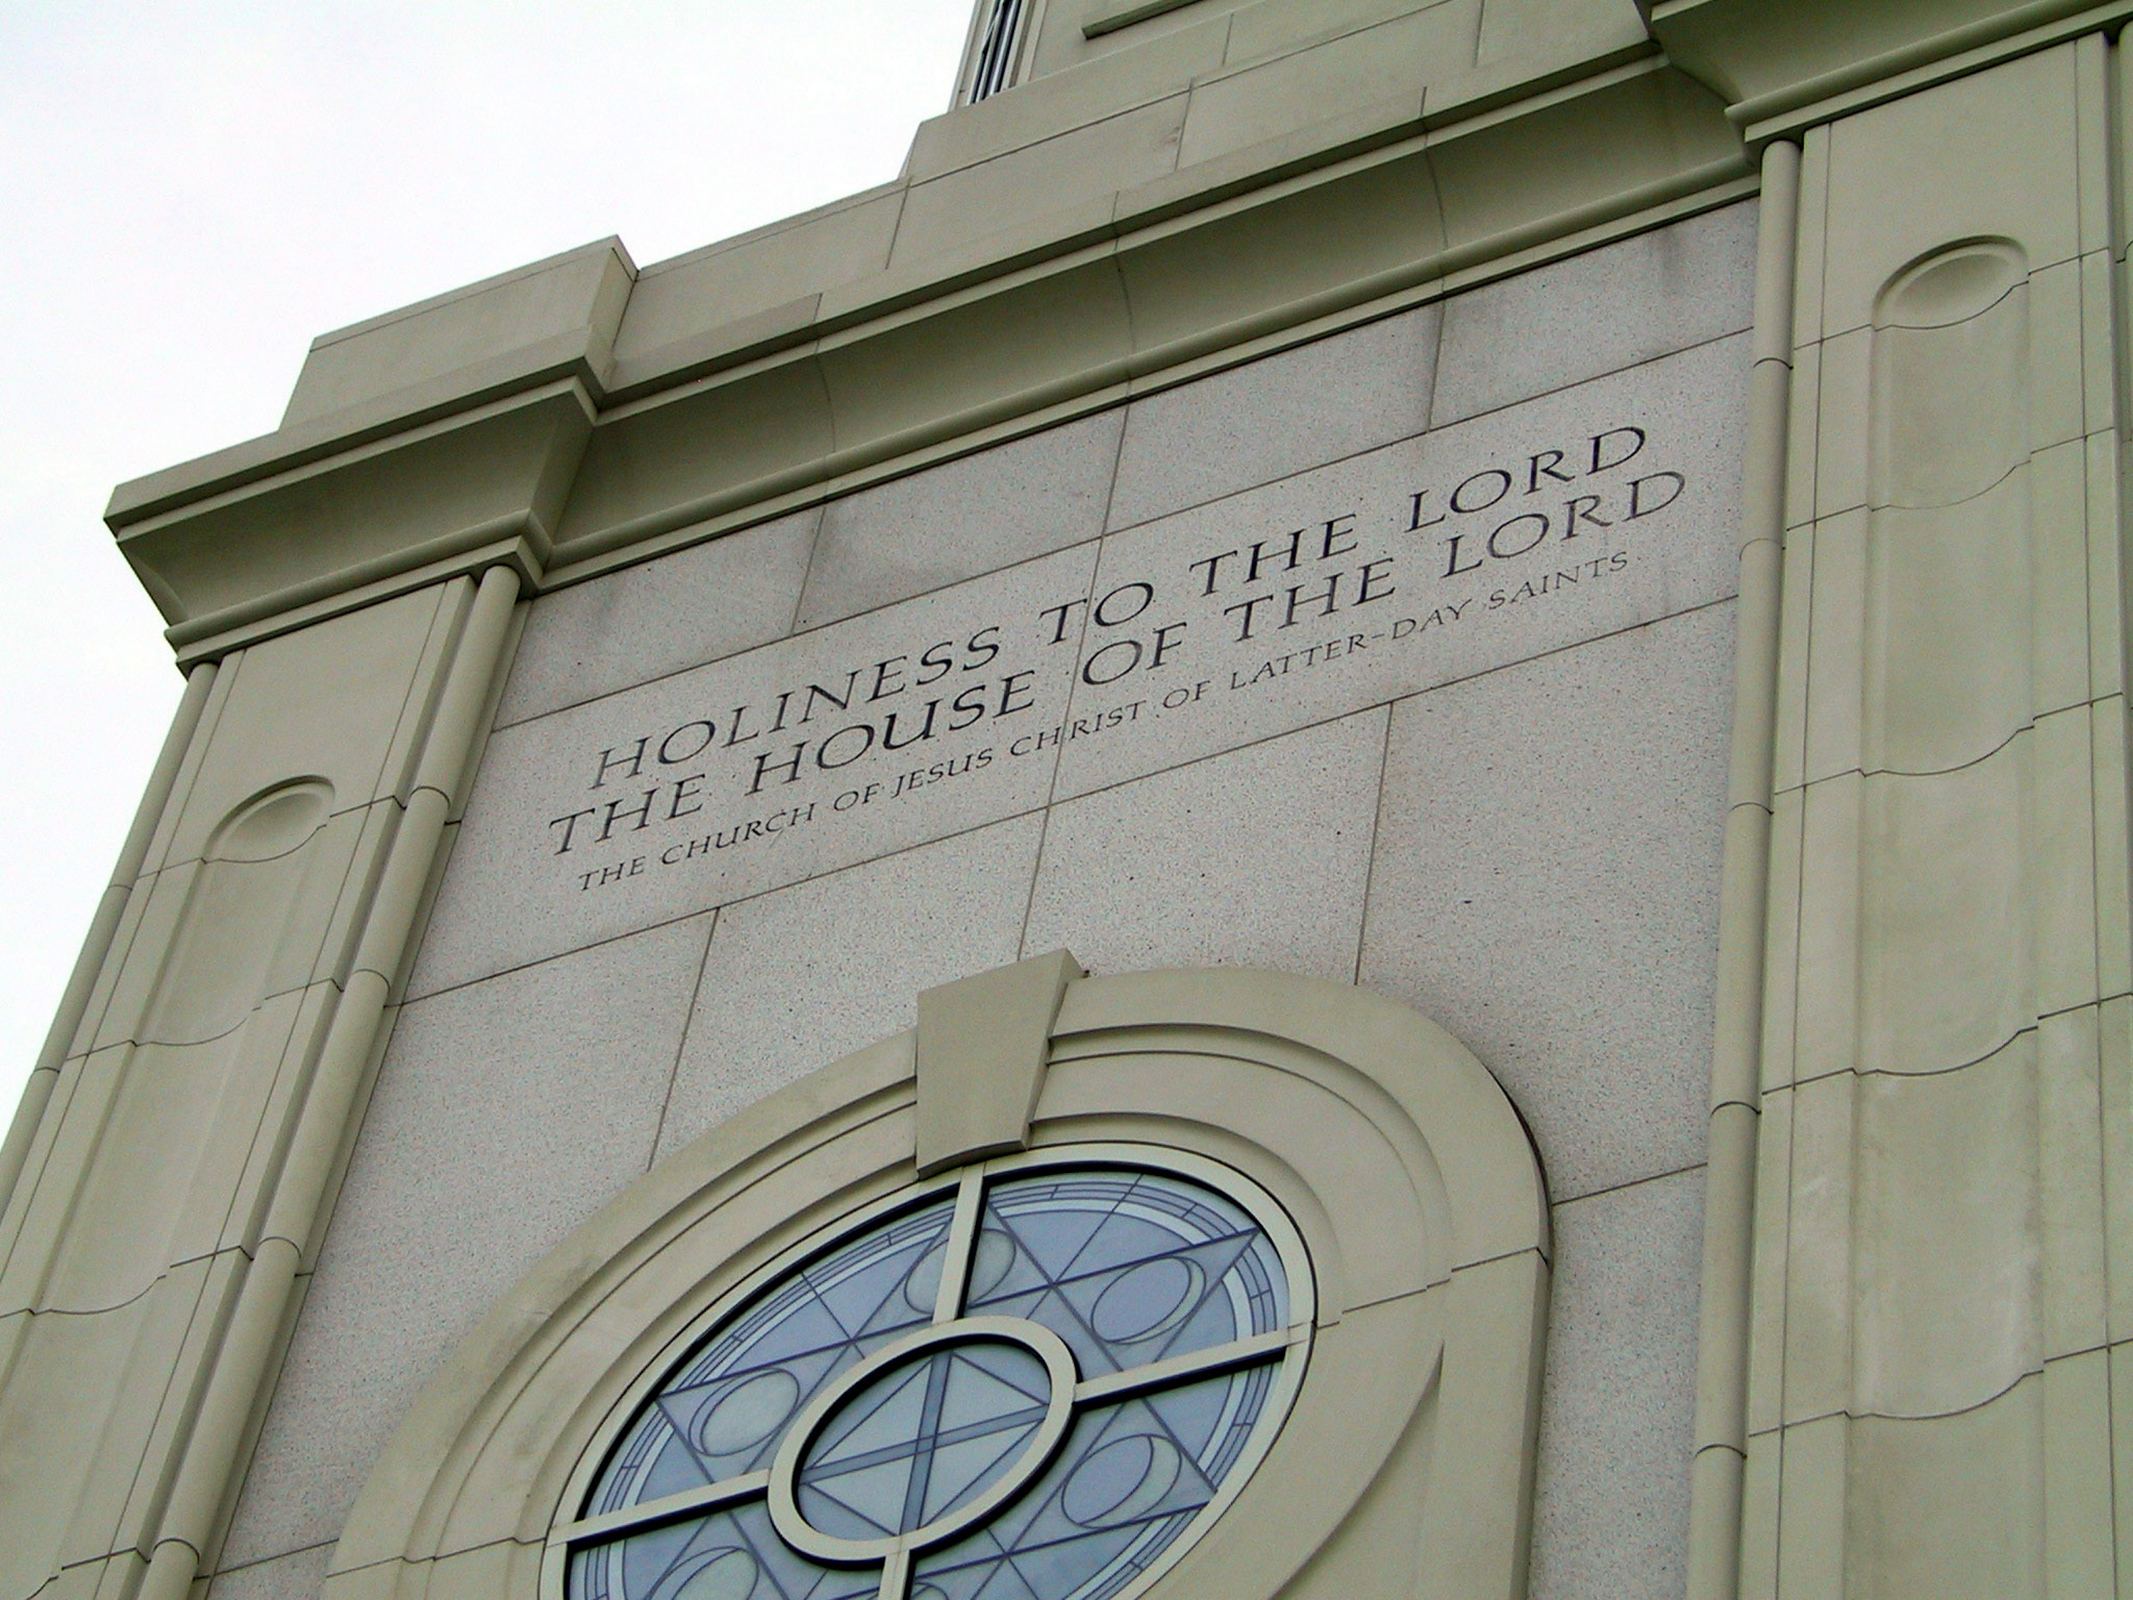 St Louis Missouri Templeholiness To The Lord The House Of The Lord